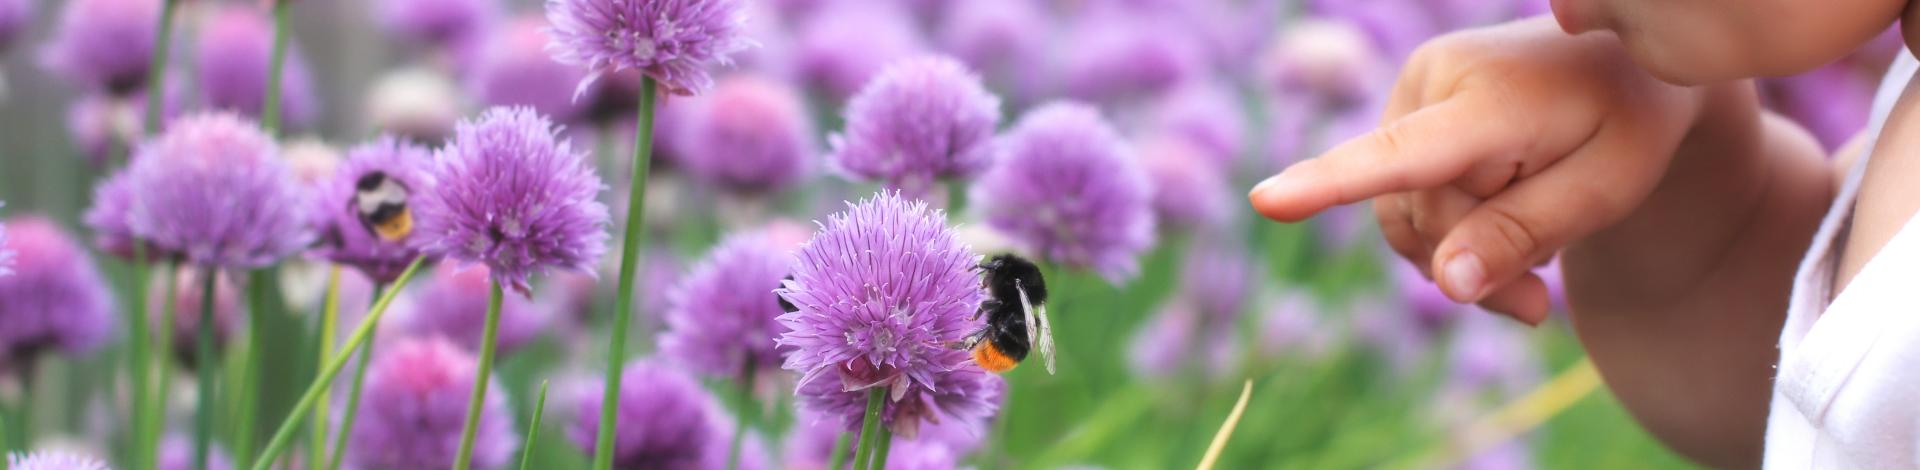 Child pointing to a bee on a chive flower among field of purple flowers